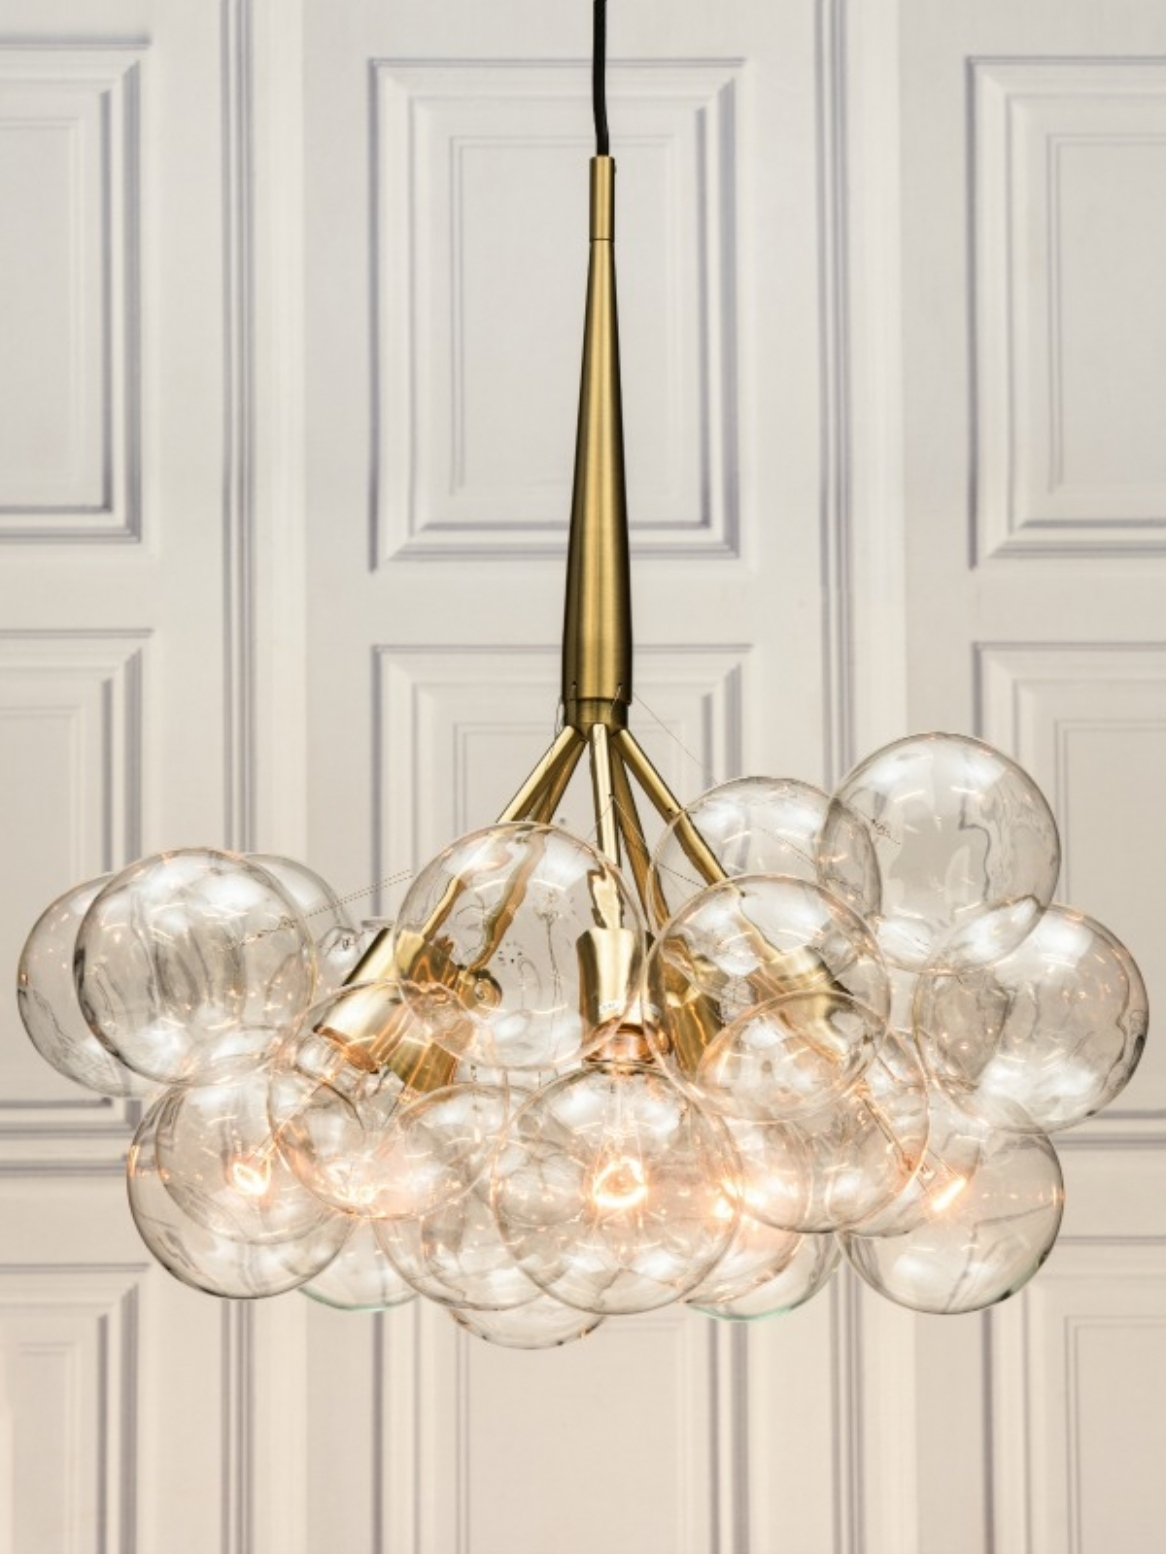 Chandeliers Design : Amazing Large Glass Globe Chandelier Retro With Current Large Glass Chandelier (View 3 of 20)